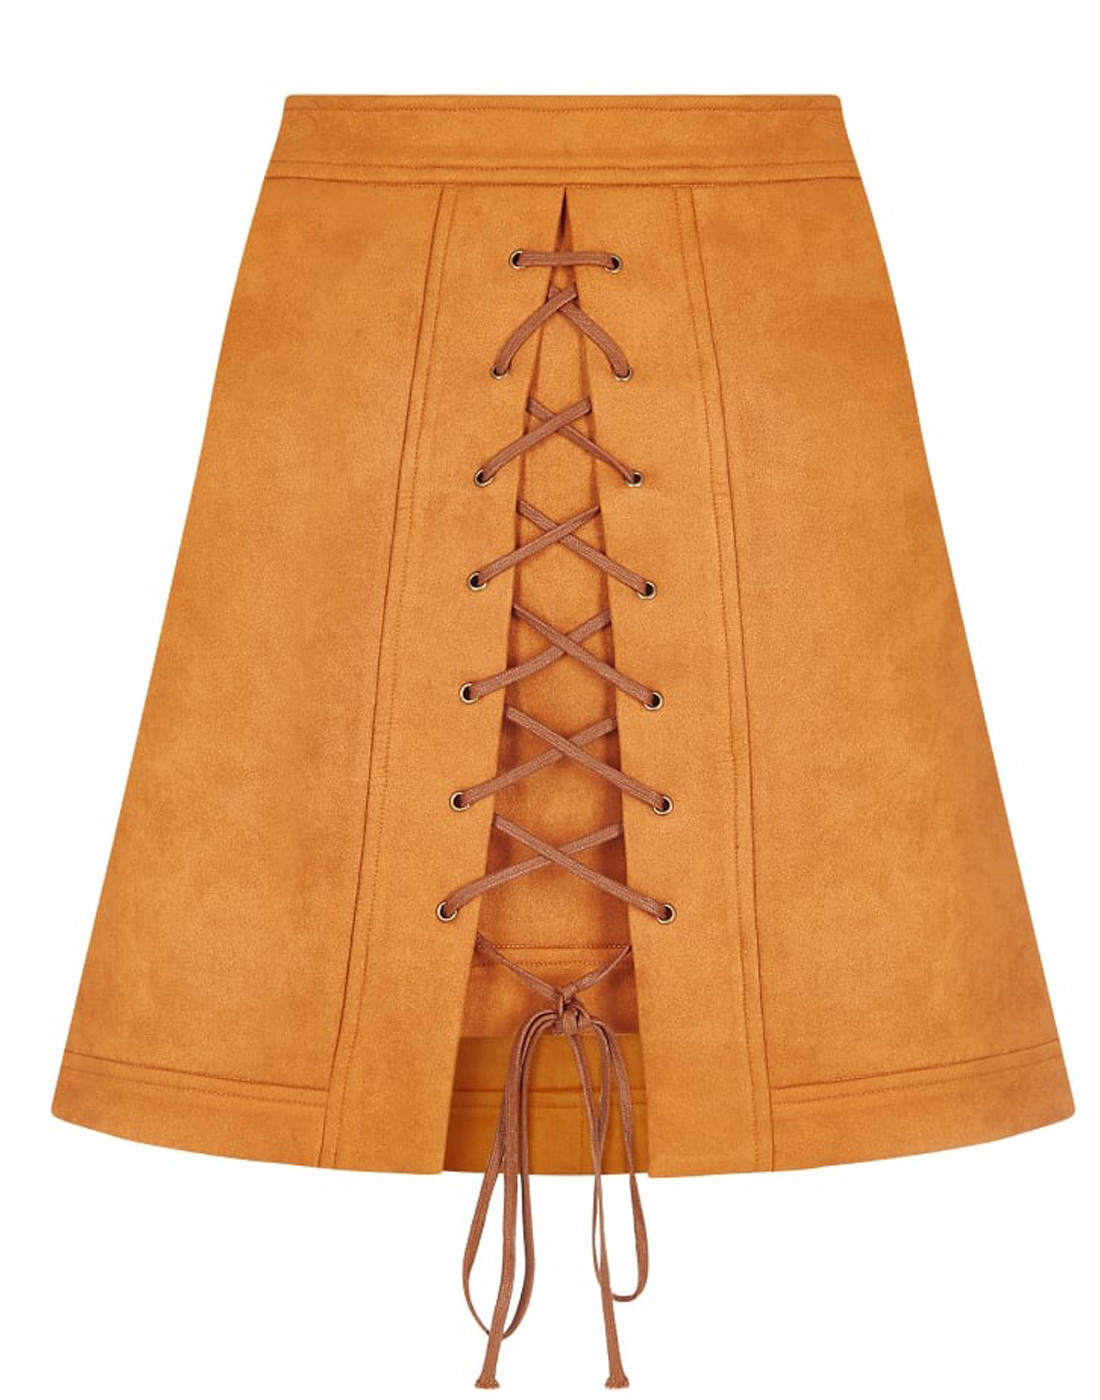 Lilca BRIGHT & BEAUTIFUL 1960s Mod Suedette Skirt